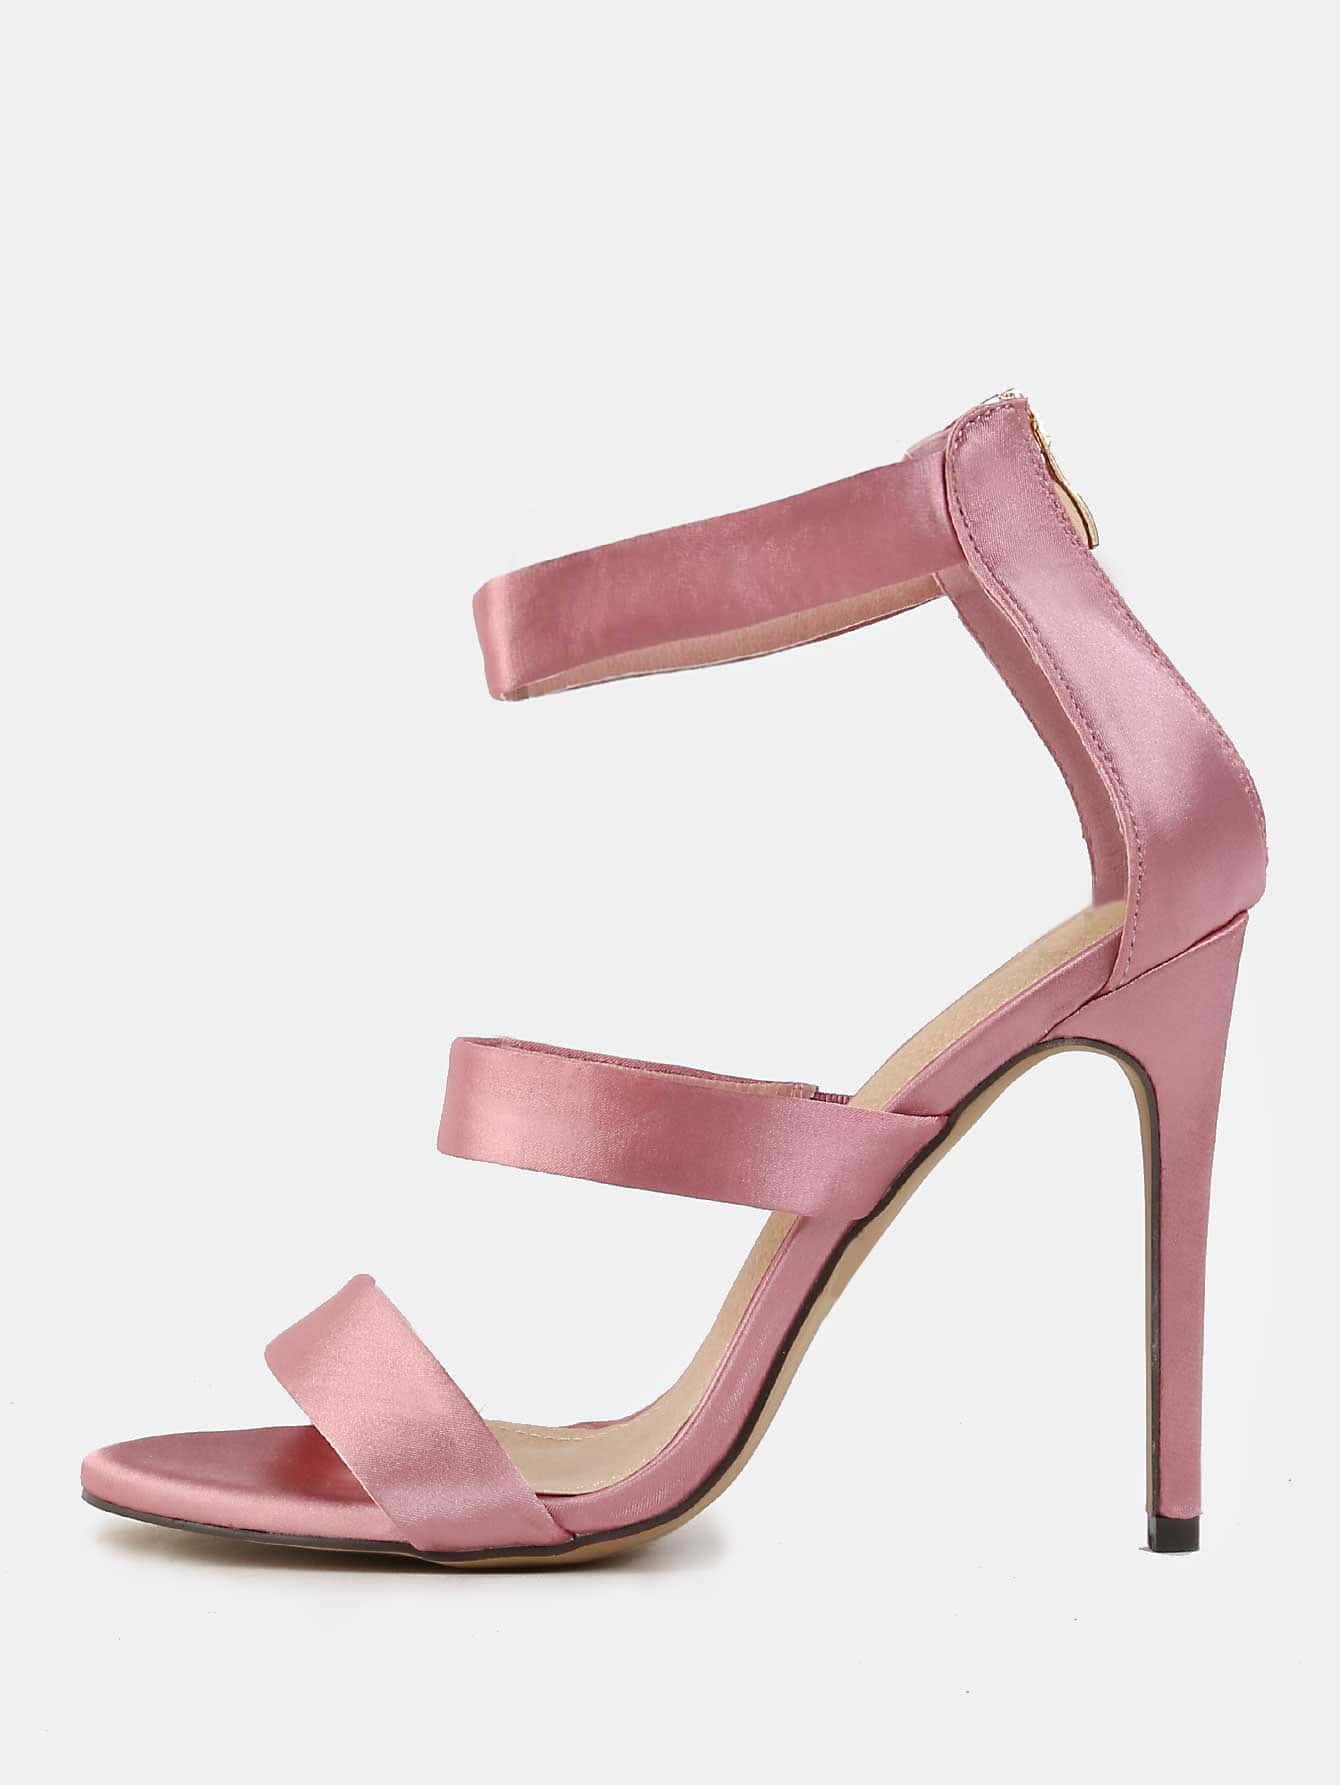 Triple Strap Satin High Heels DUSTY PINK -SheIn(Sheinside)